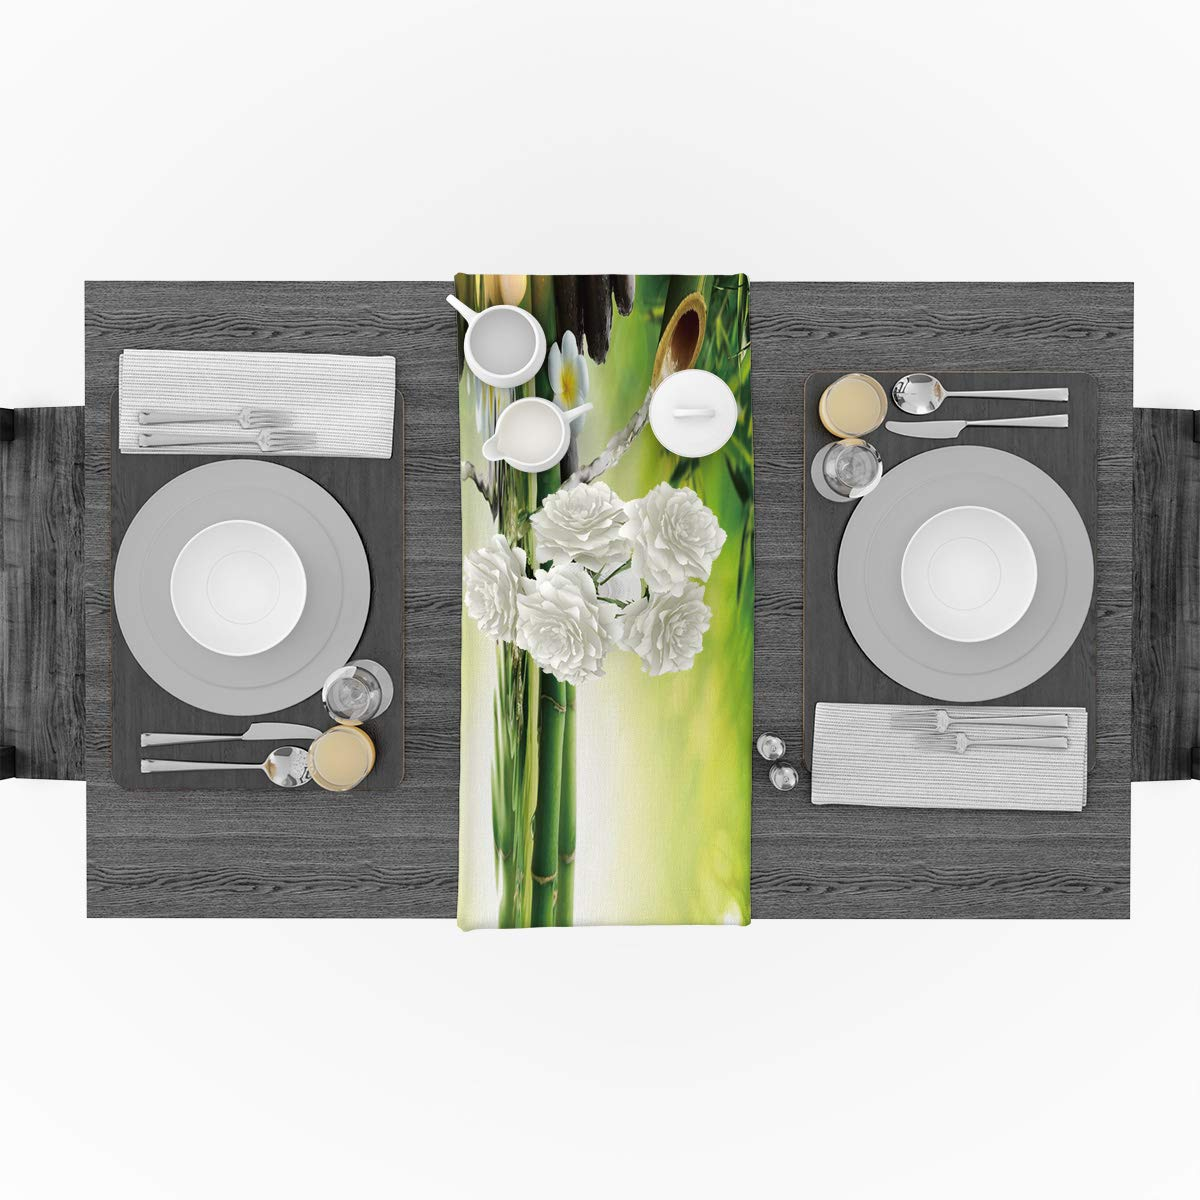 WAZZIT Spa Decor Cotton Table Runner - Perfect for Summer Holiday Parties and Everyday Use 14x72inch, Zen Garden Theme Jasmine Flower Bamboos by WAZZIT (Image #2)